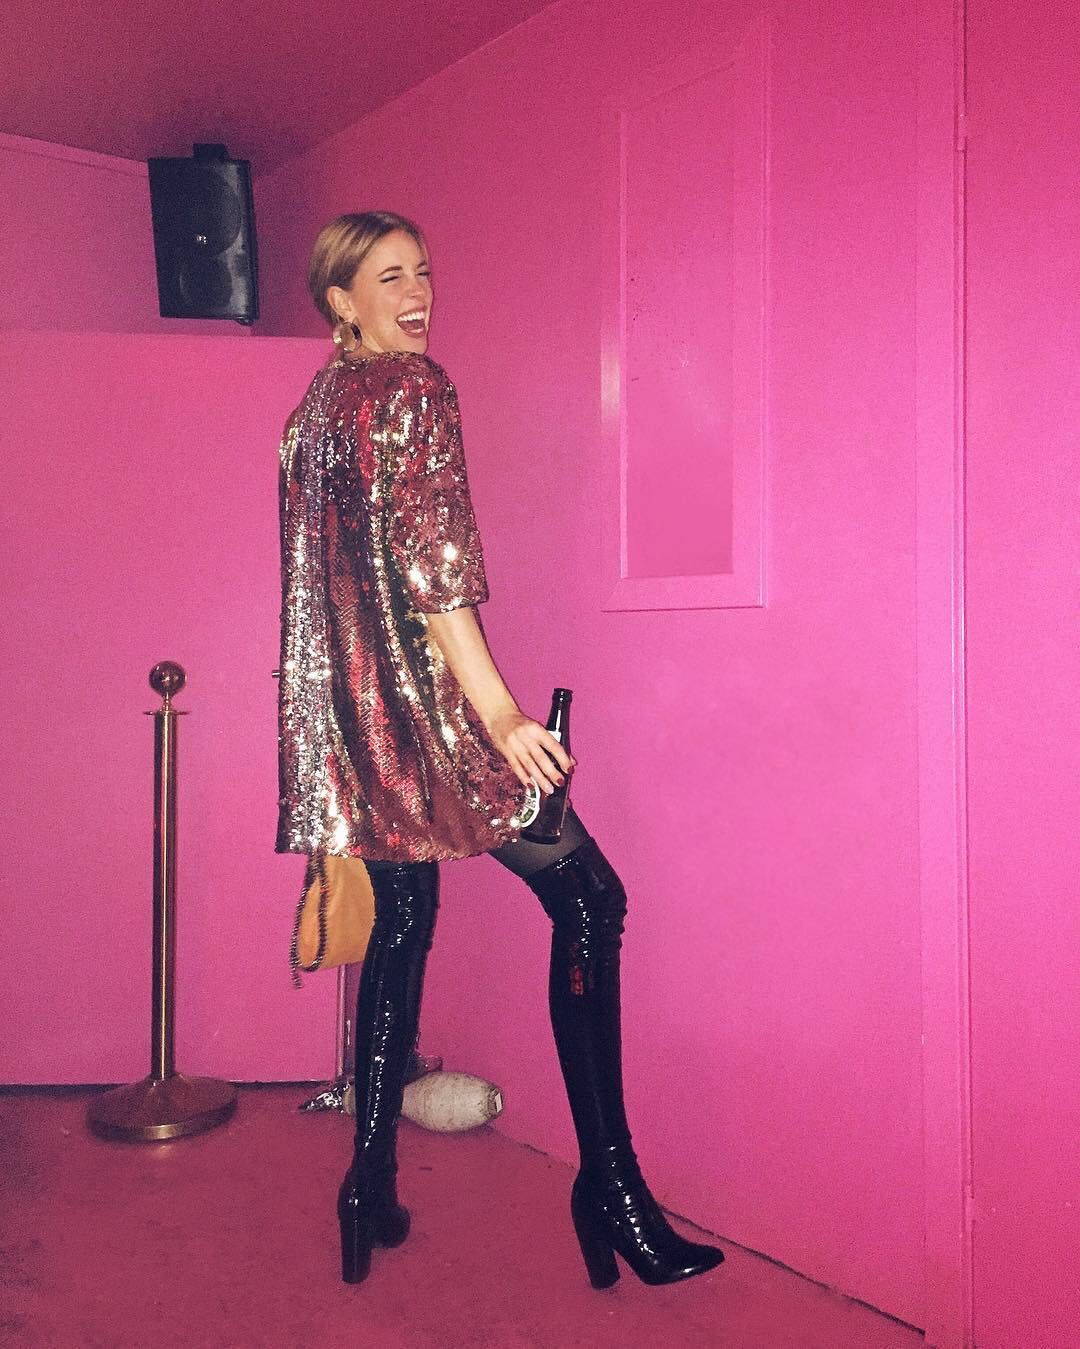 Sequin t-shirt and patent boots 💖💖💖 from @hannastefansson's closet